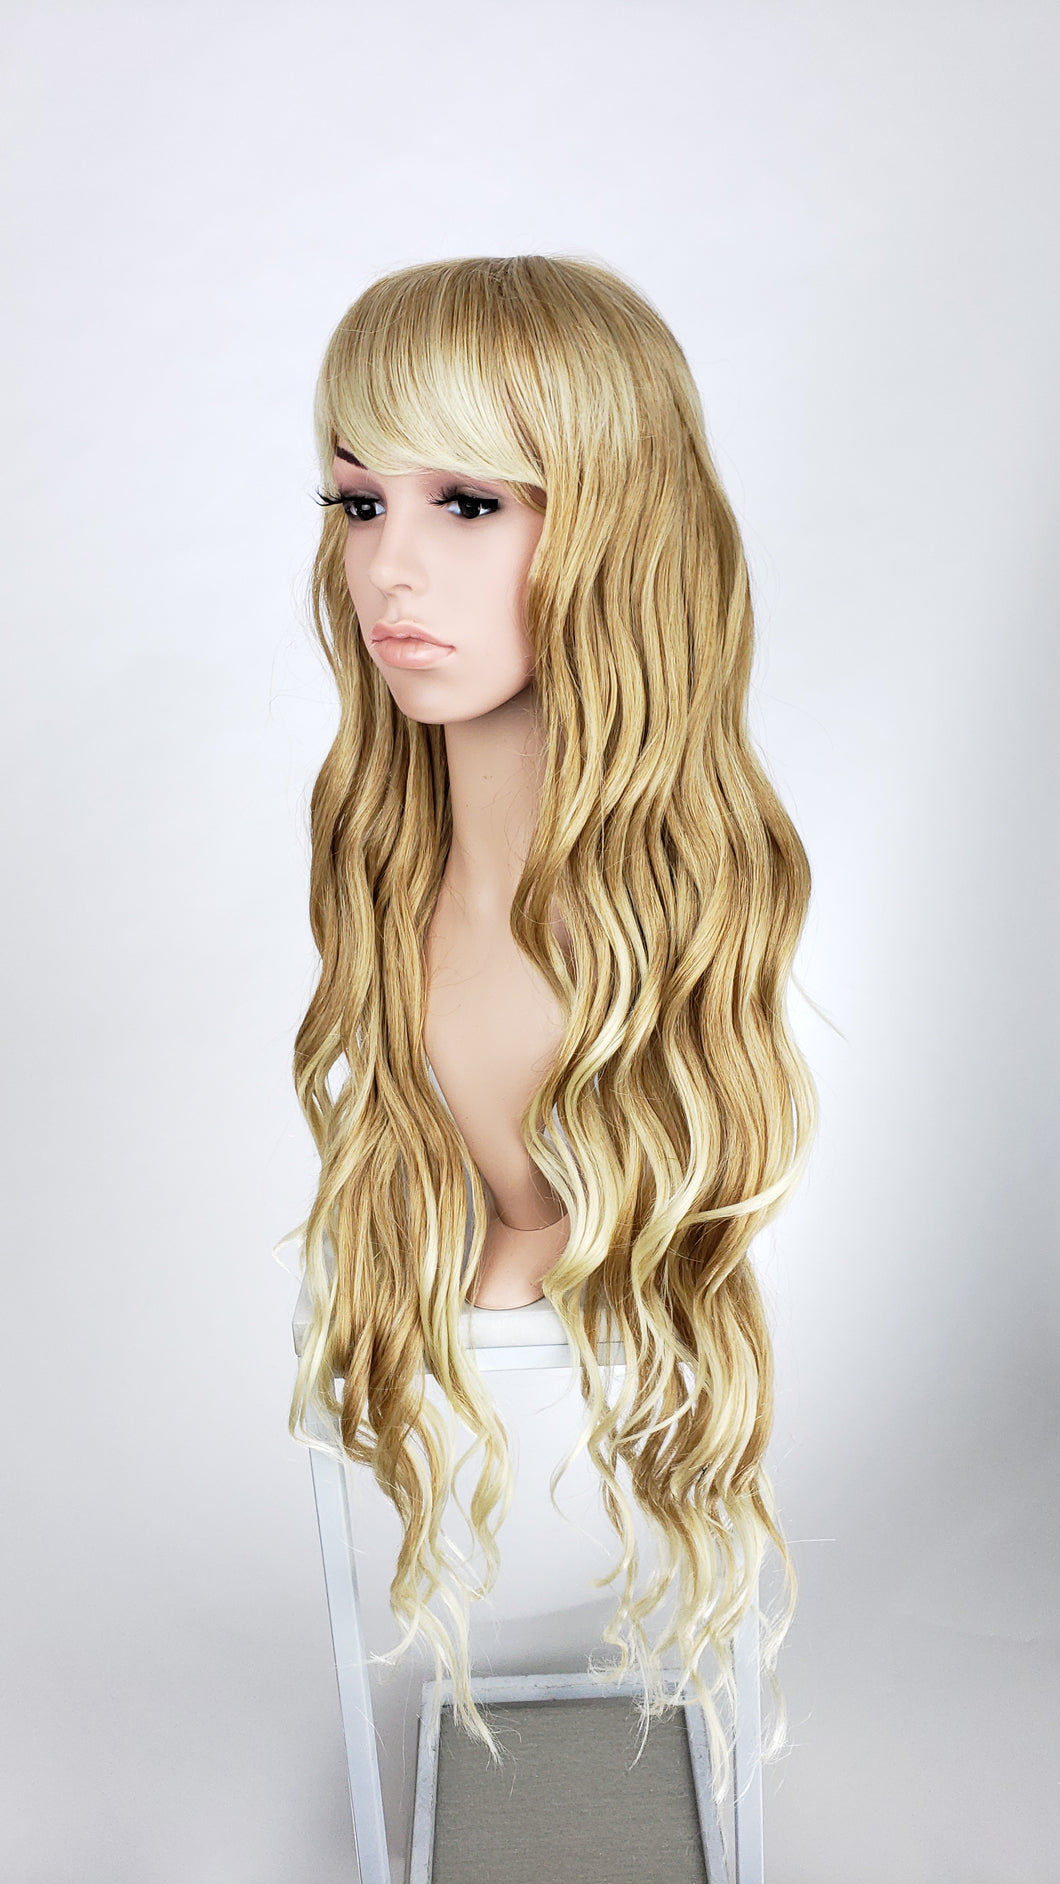 Pose Wigs Strawberry Blonde Ombre Long Curly with Bangs Fashion Wig HSSAH91